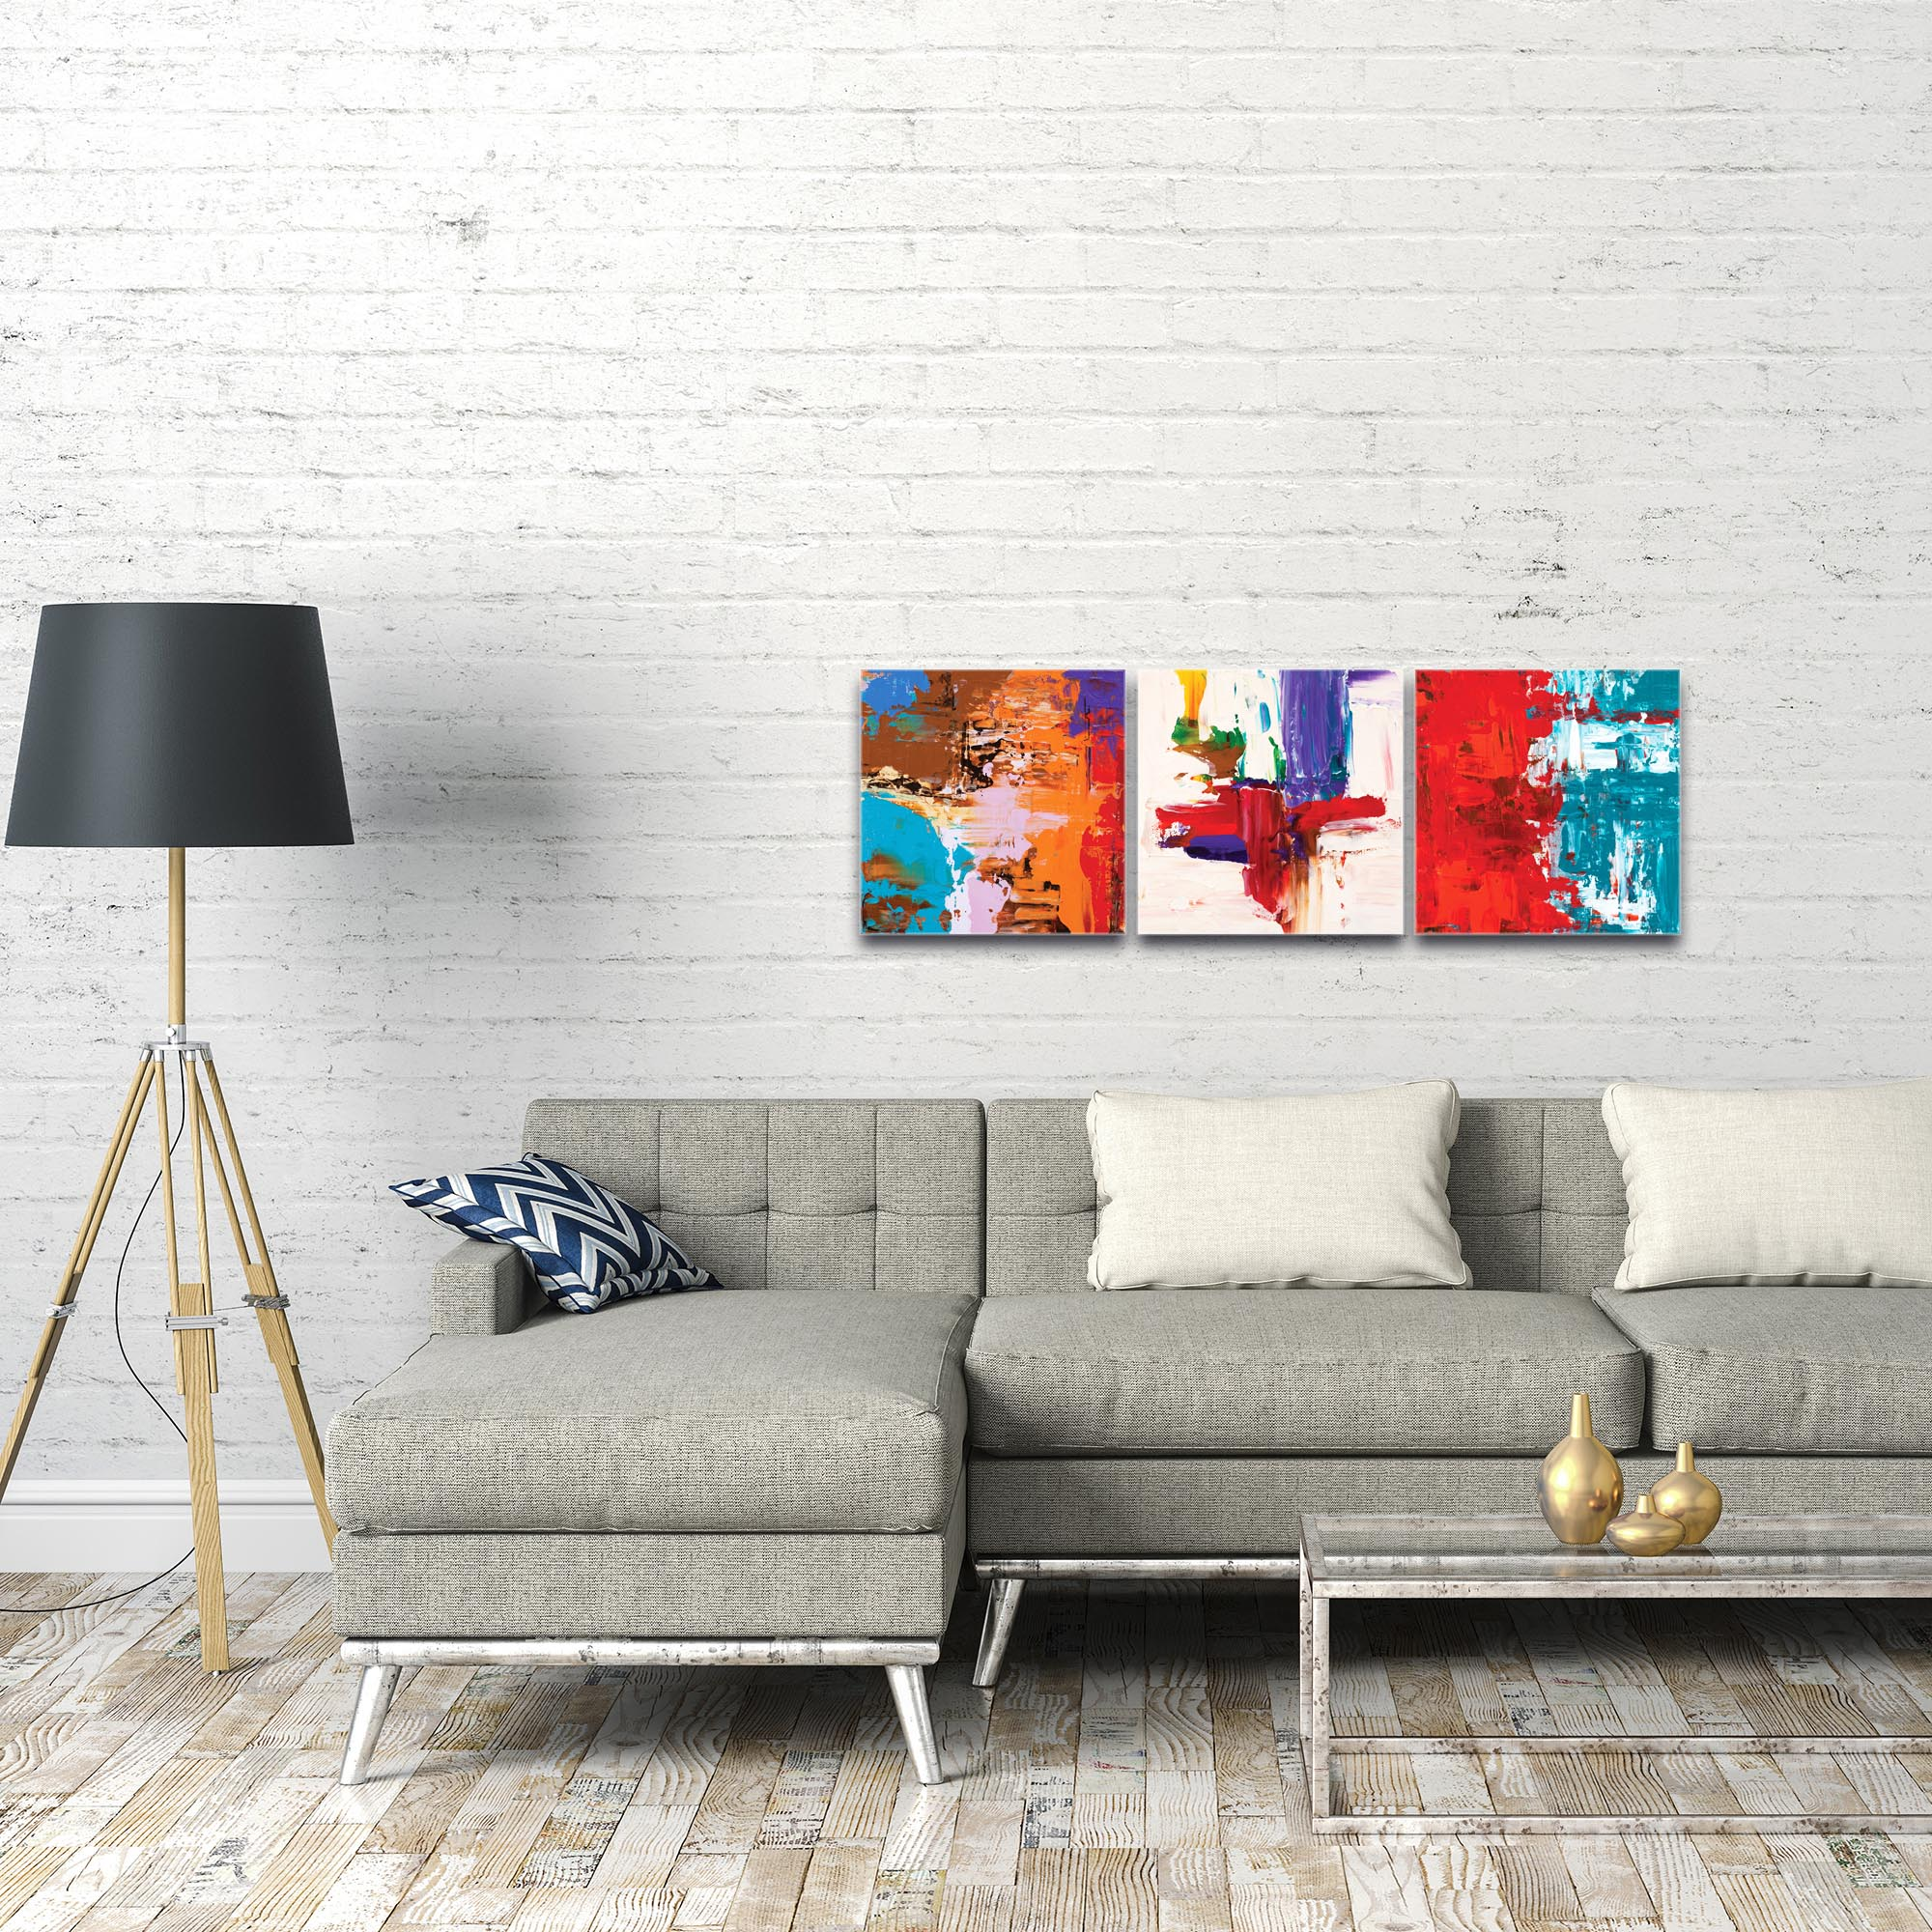 Abstract Wall Art 'Urban Triptych 5' - Urban Decor on Metal or Plexiglass - Image 3